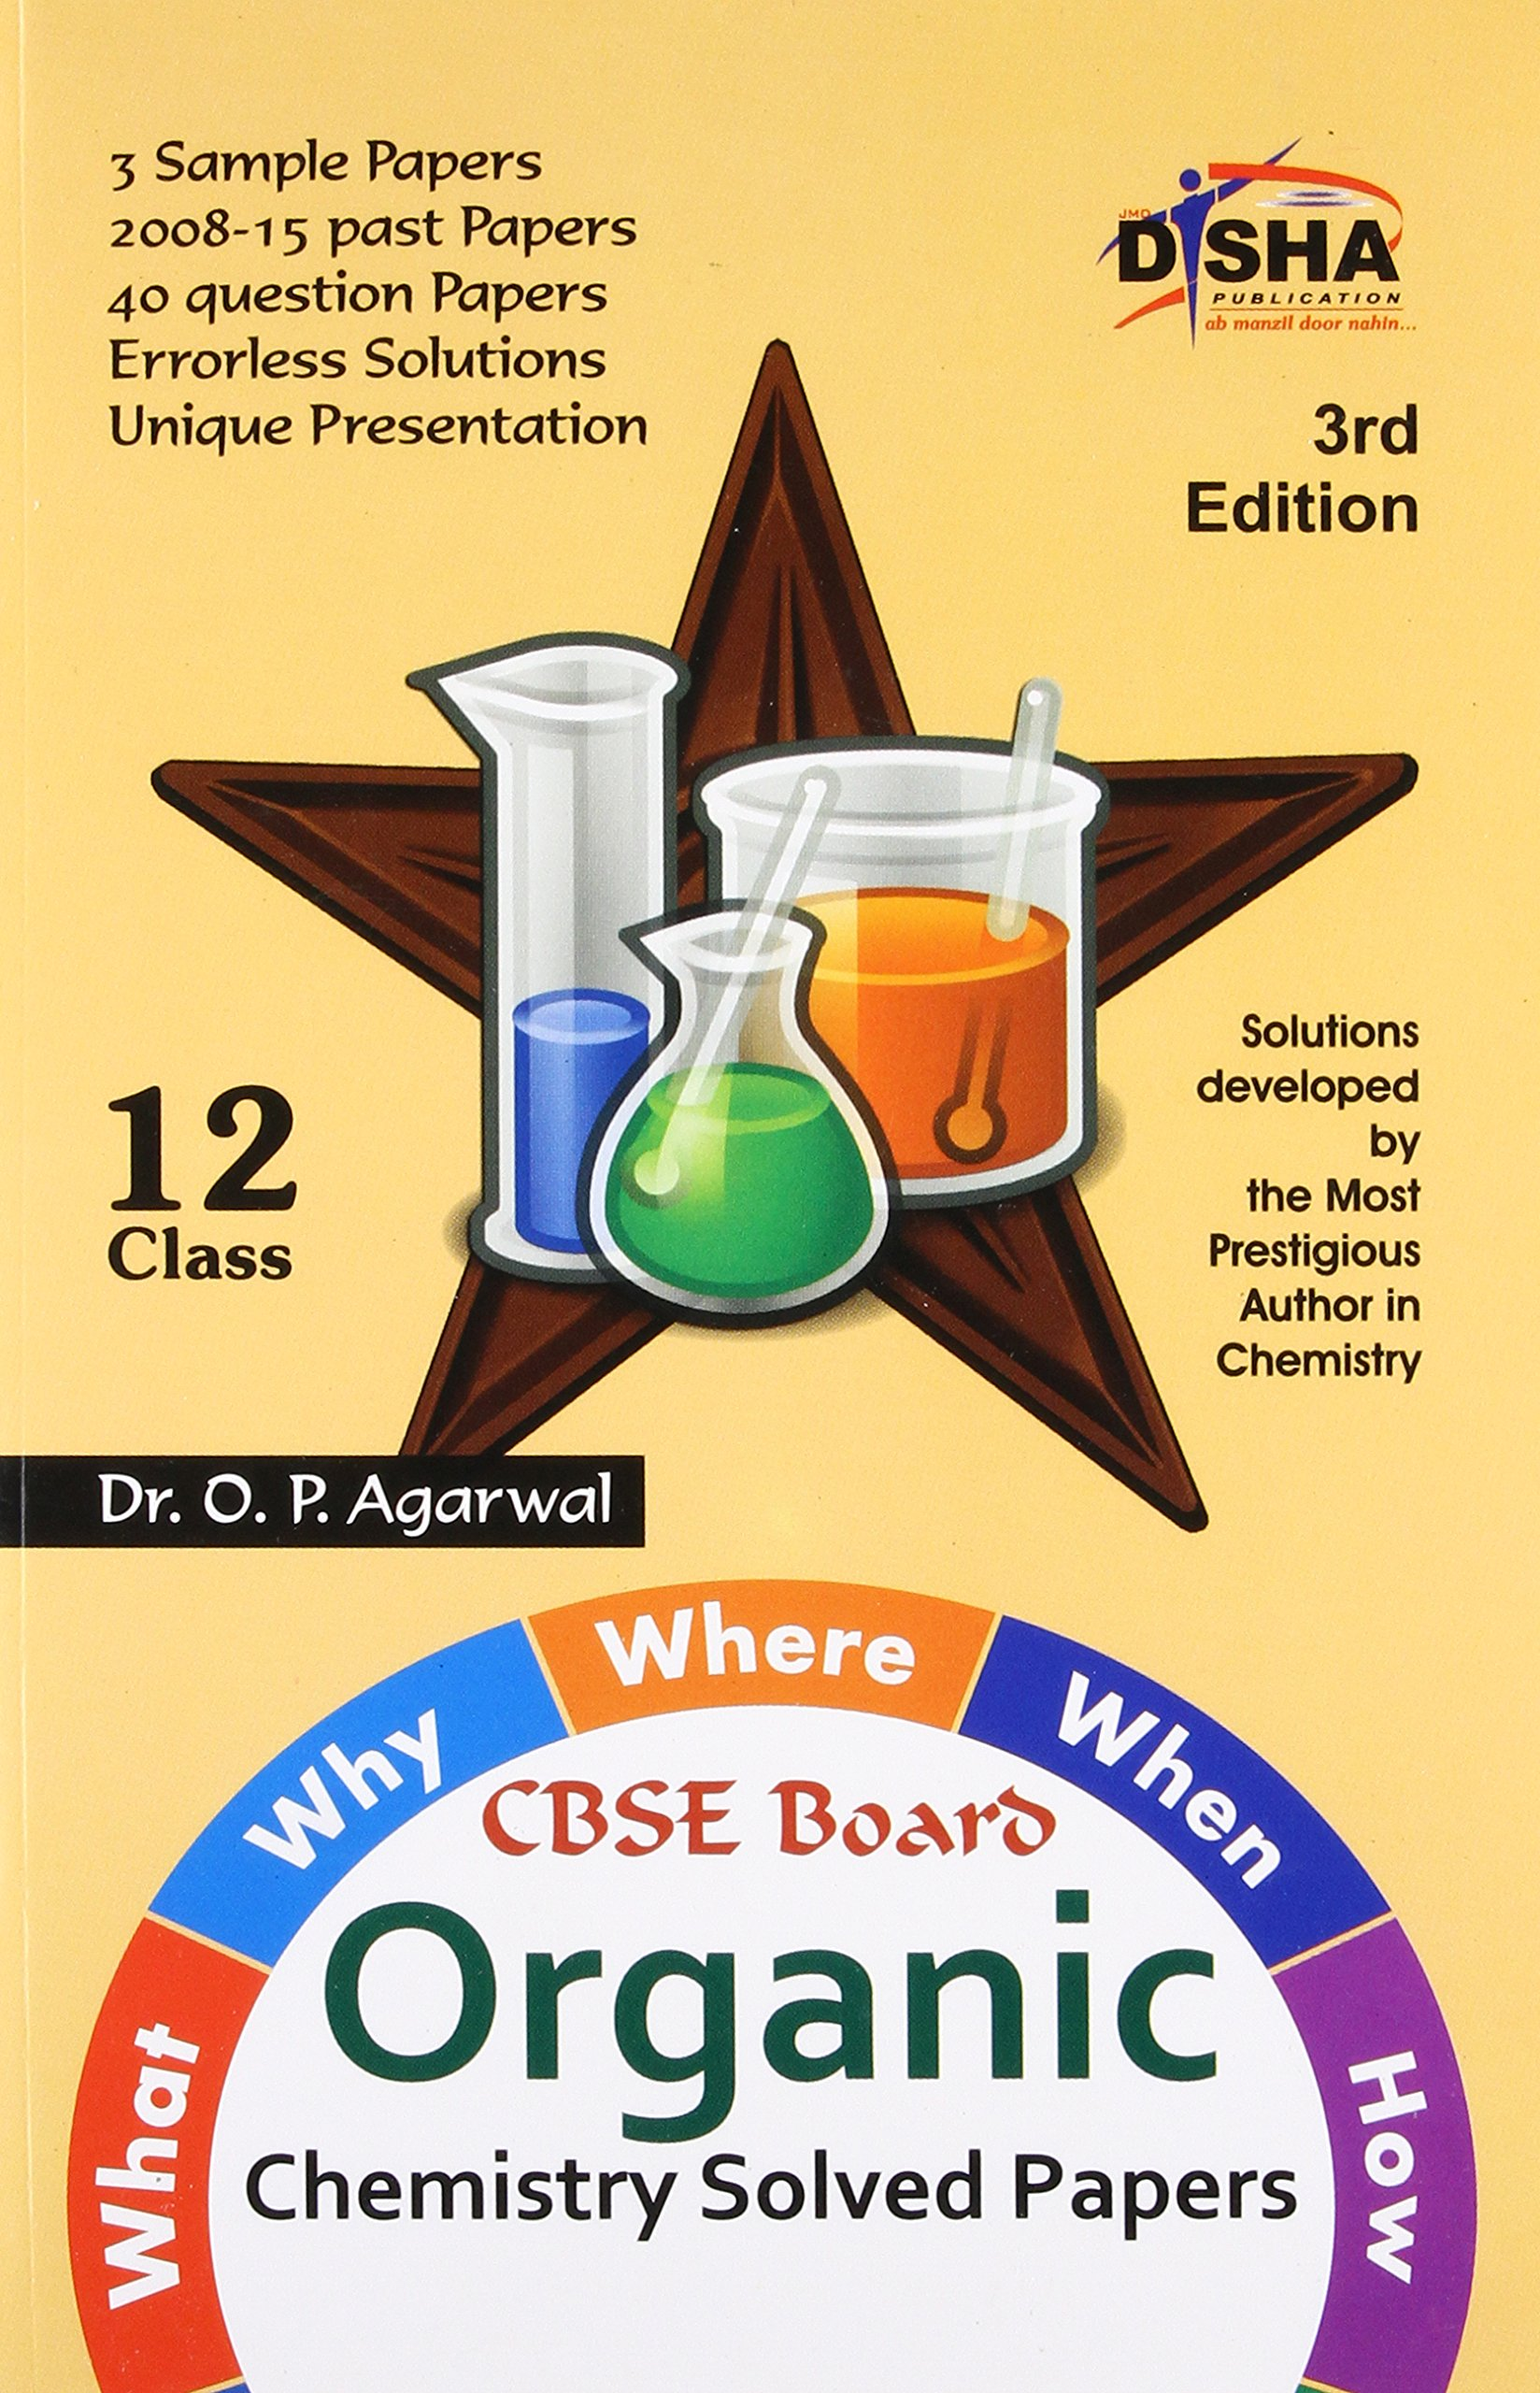 What, Why, Where, When & How of Organic Chemistry CBSE Board Class